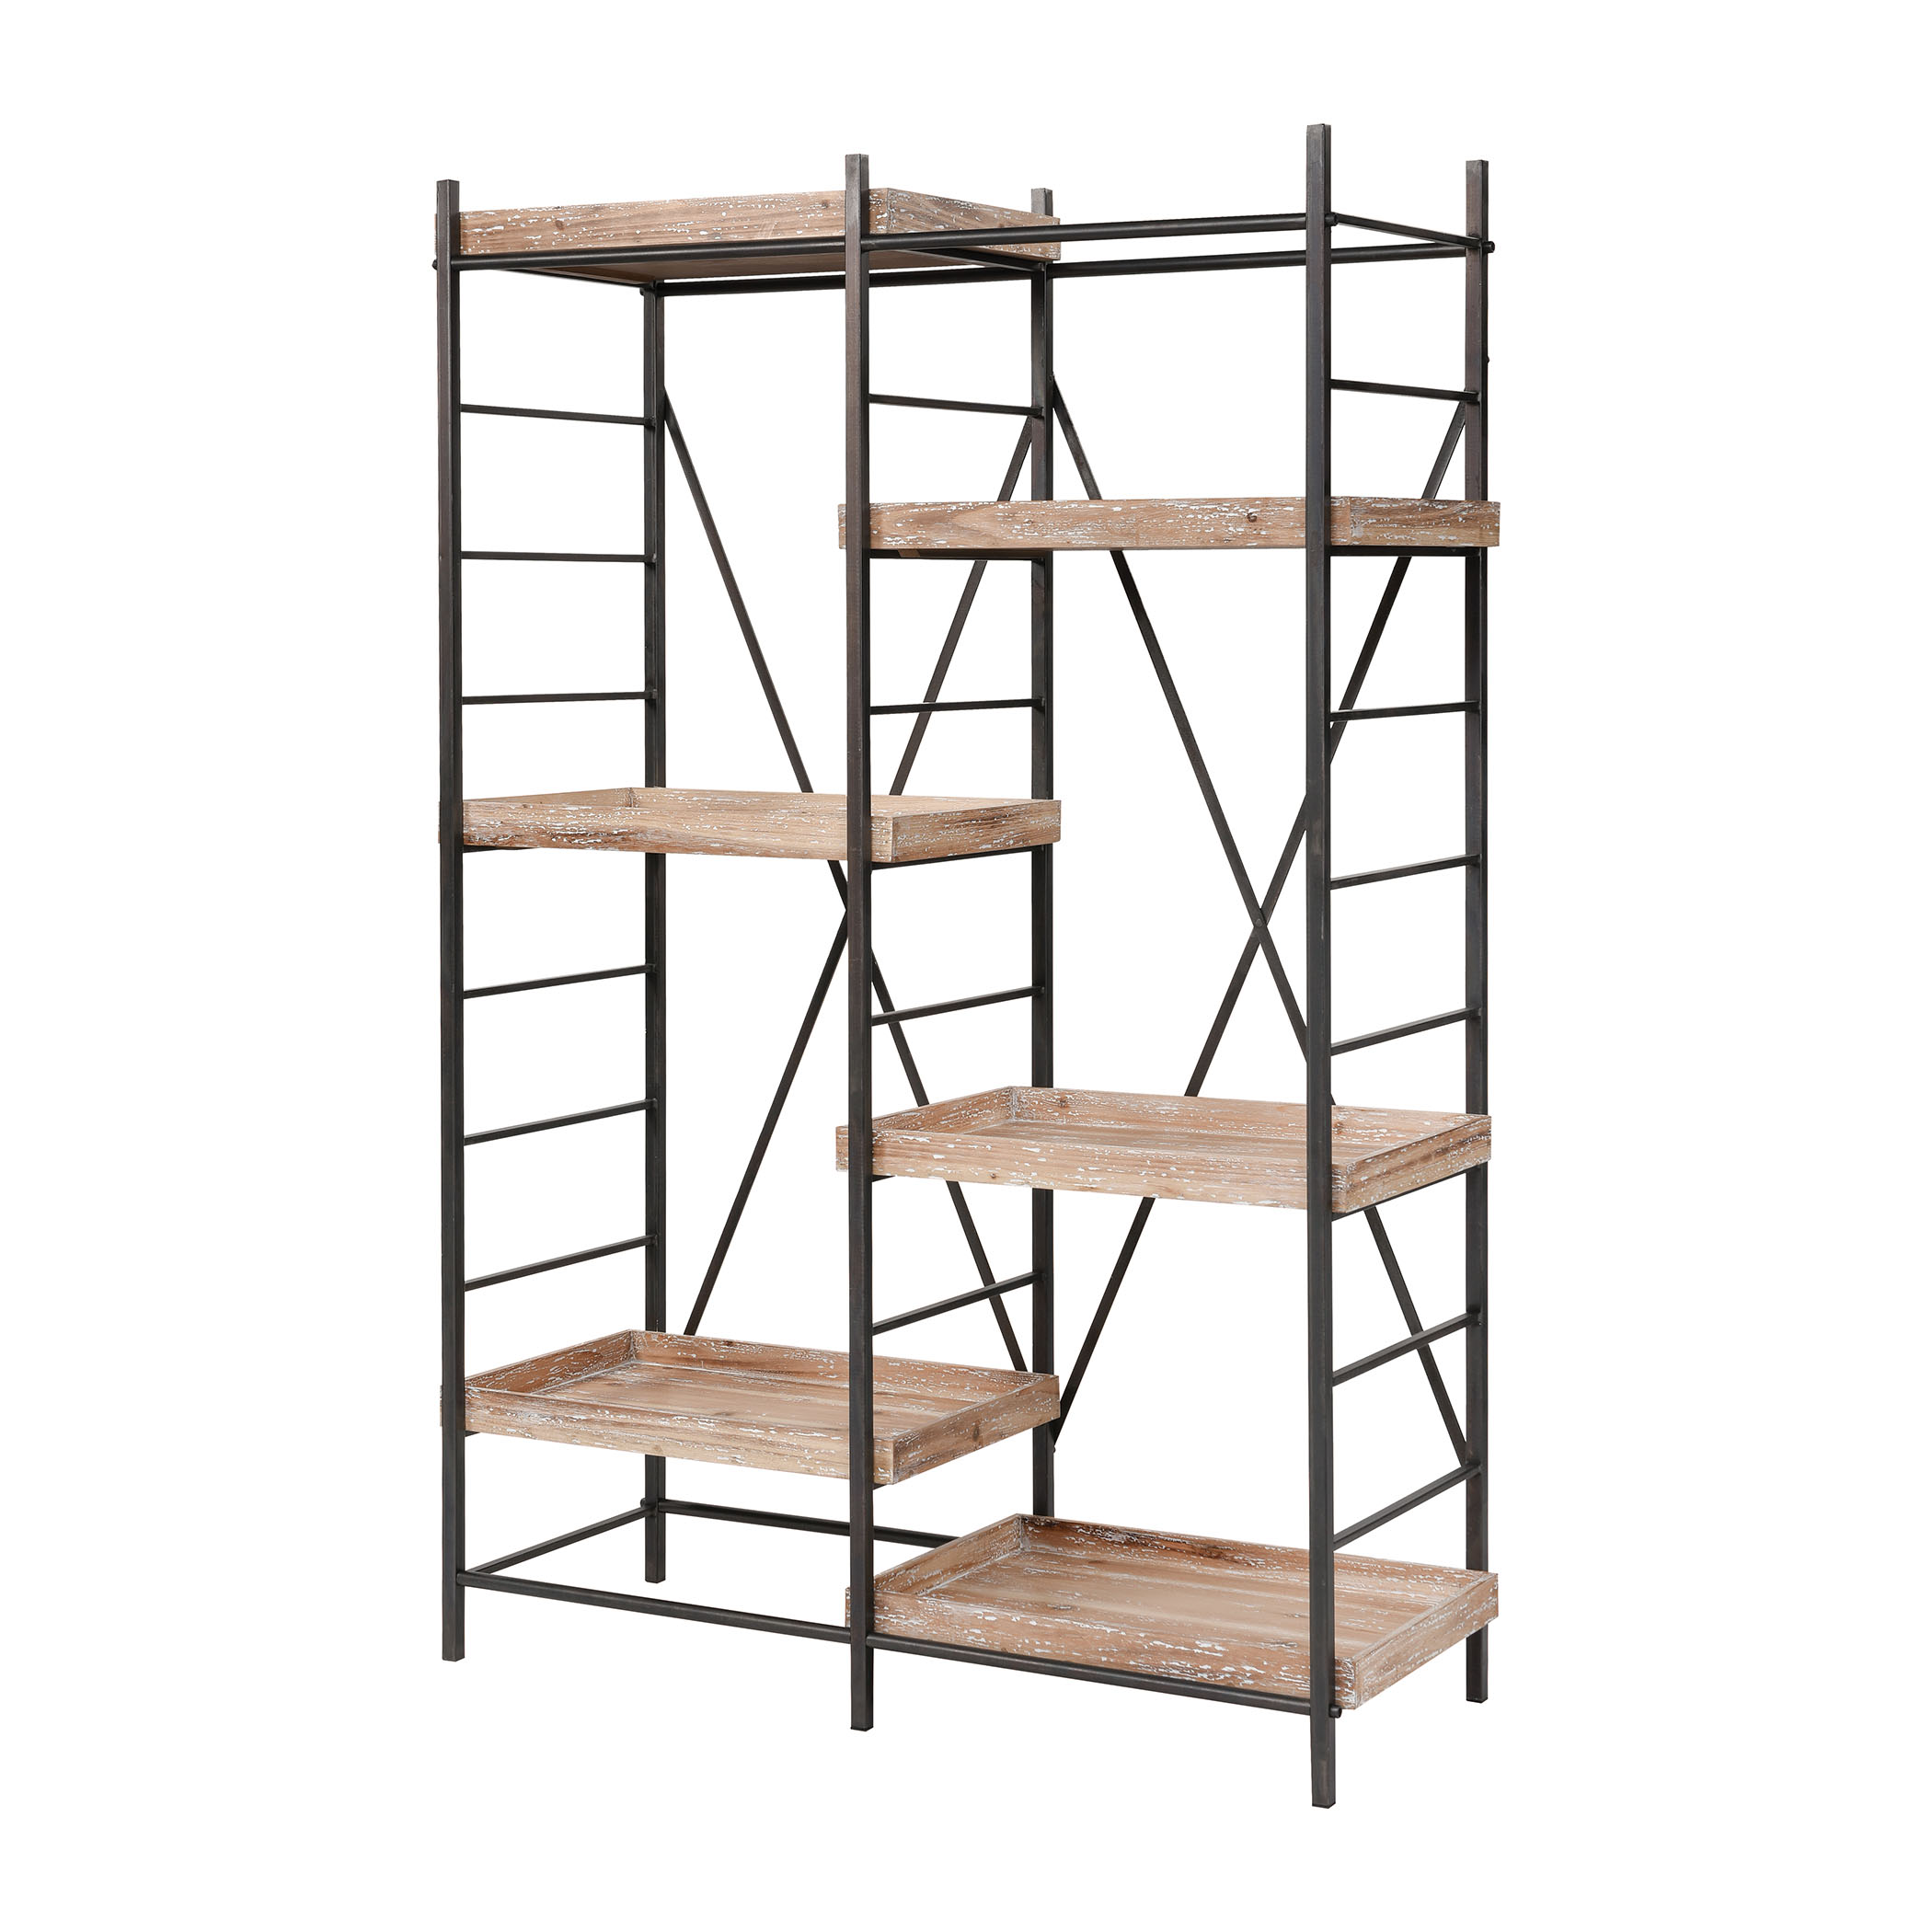 Tonka Staggered Shelving Unit in Natural Wood with White Antique And Bronze 3138-498 | ELK Home